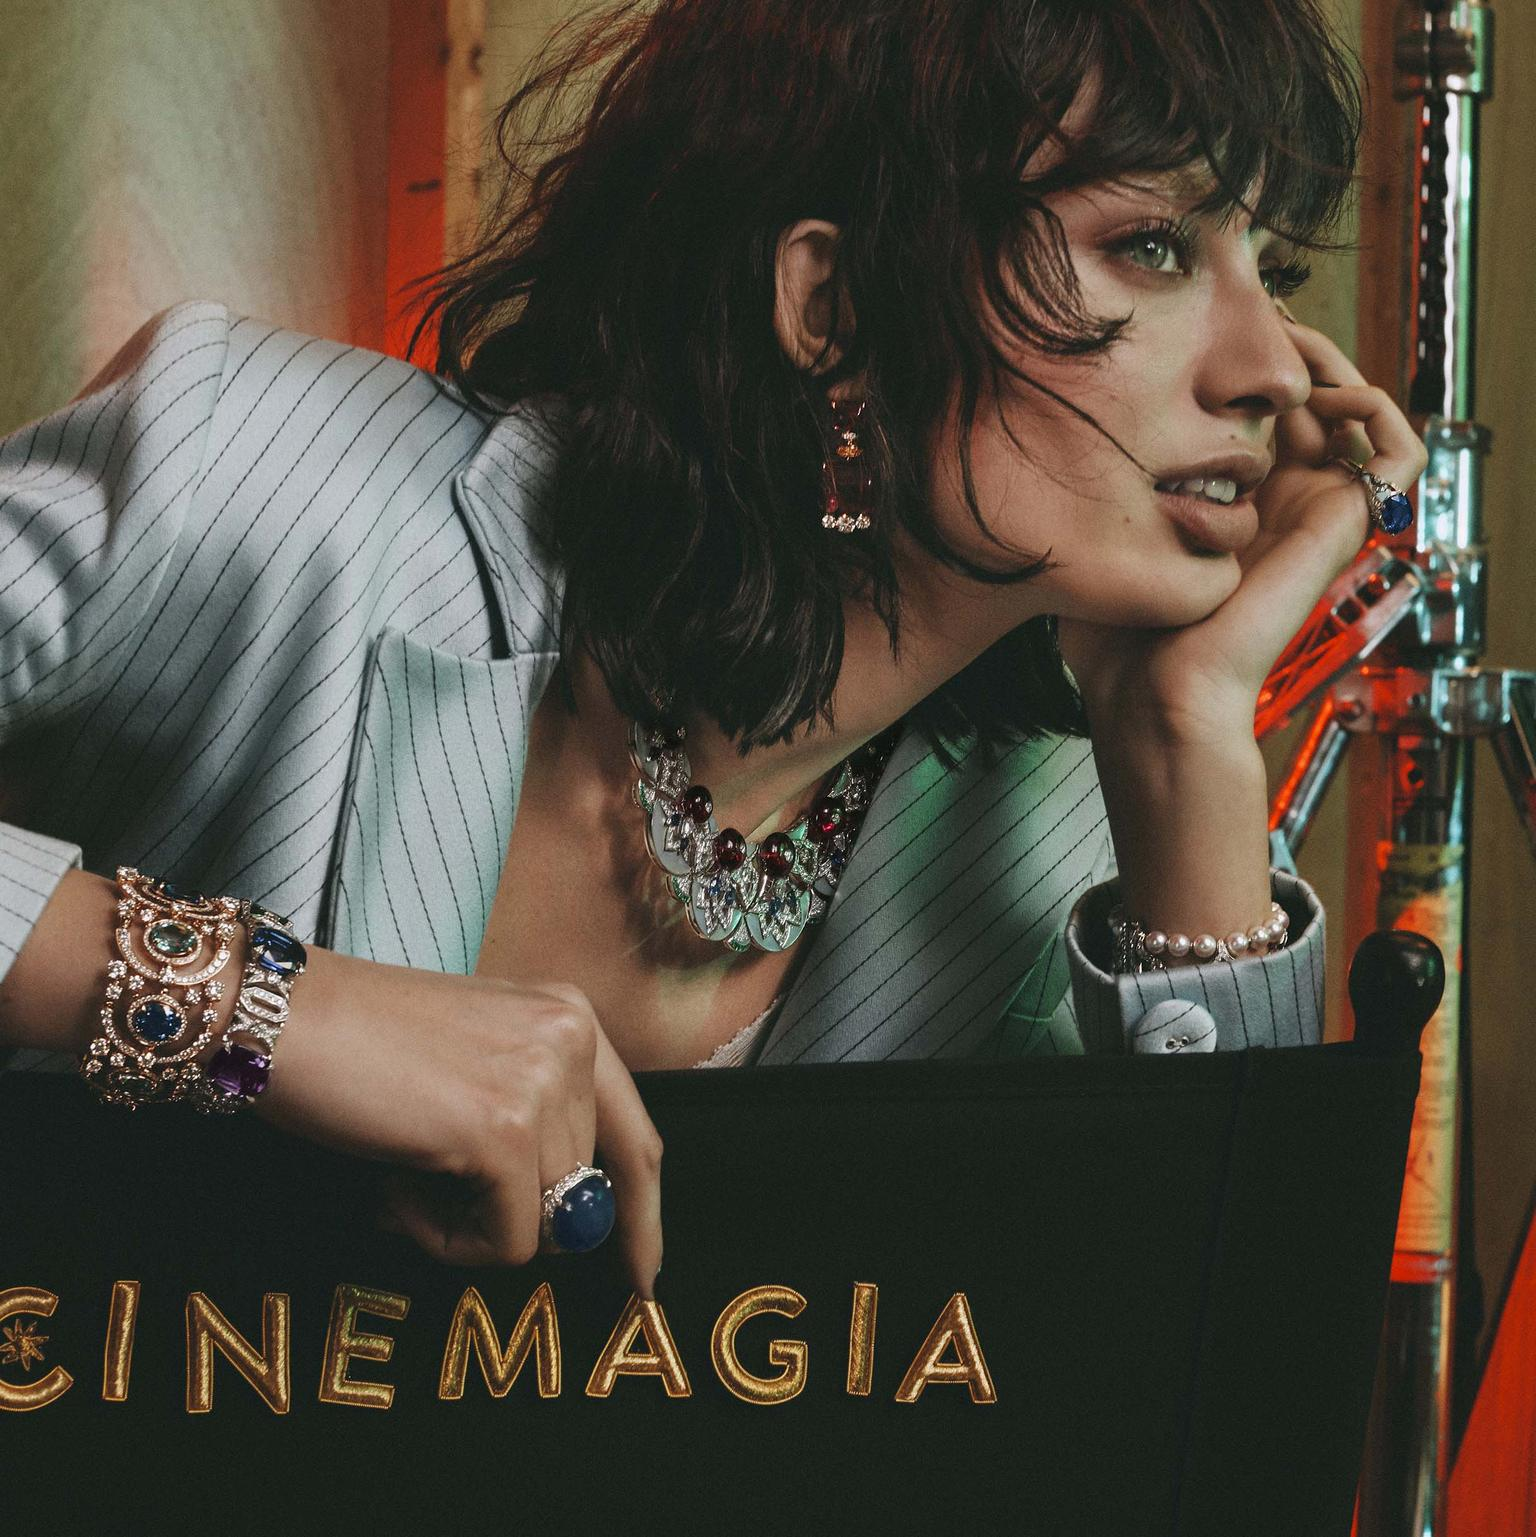 Bulgari Cinemagia Legendary Diva necklace and bracelet